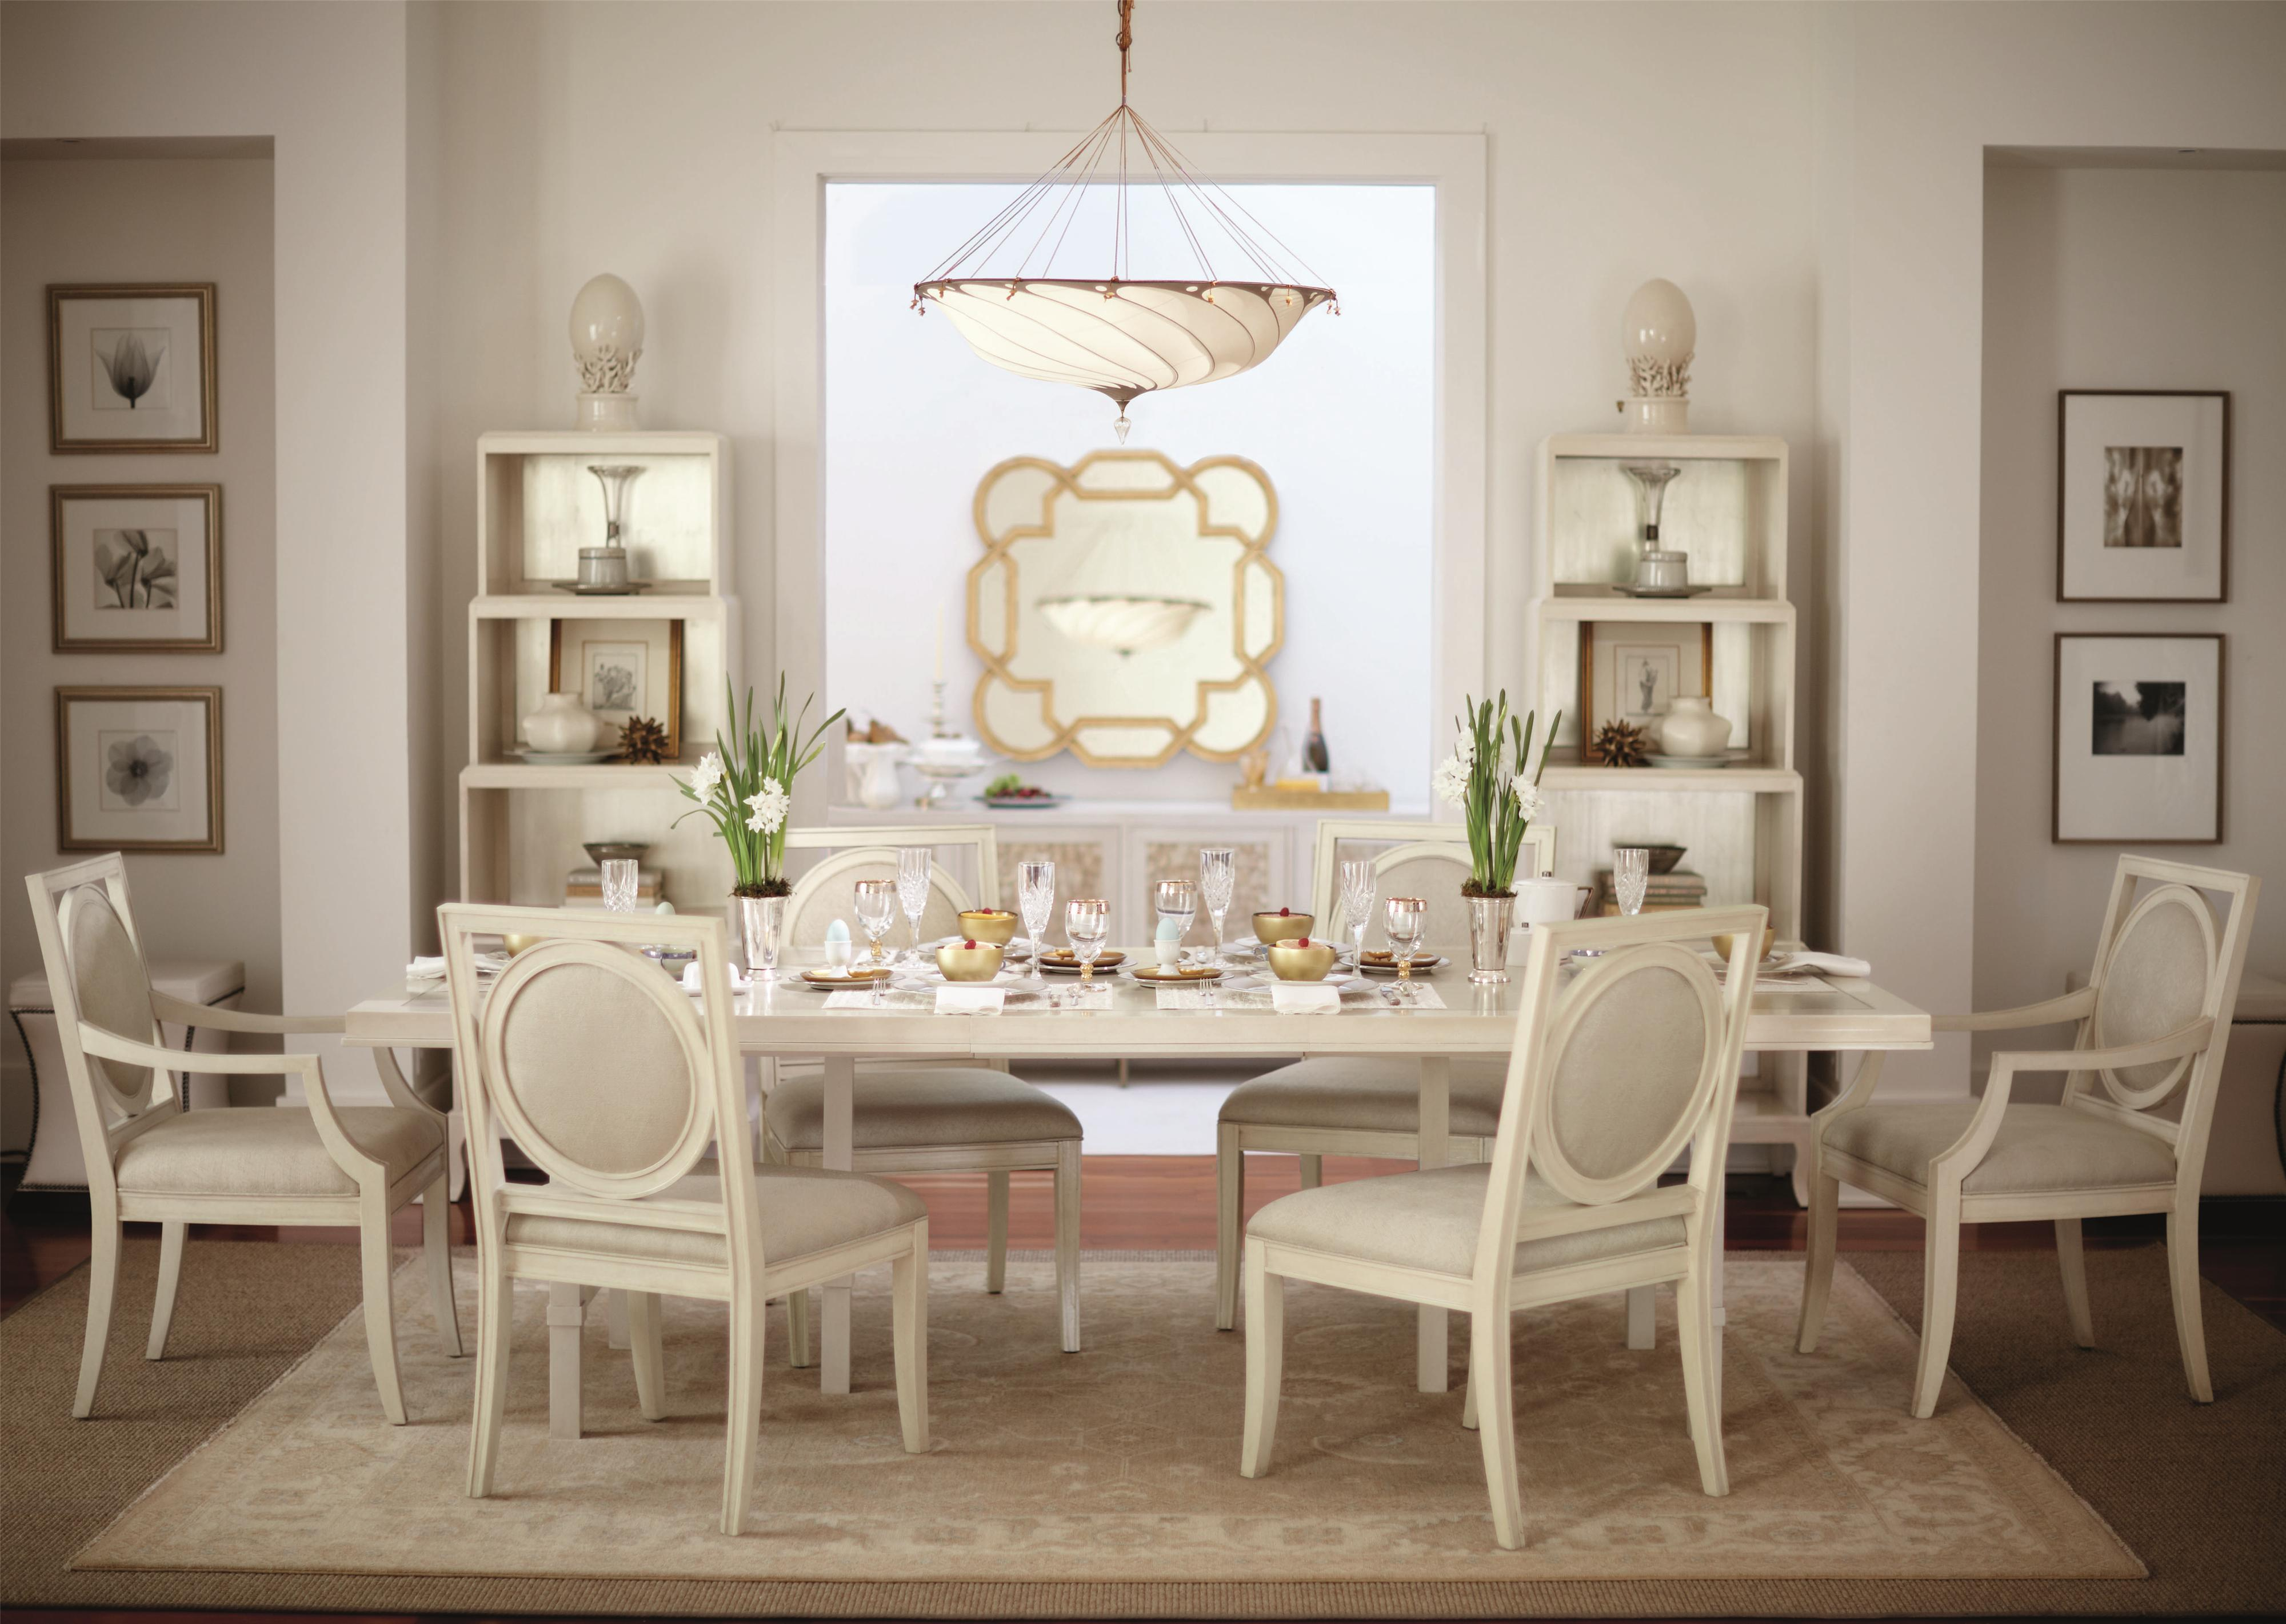 Bernhardt Salon 7 Piece Dining Set with Rectangular Table - Item Number: 341-224+2x562+4x561